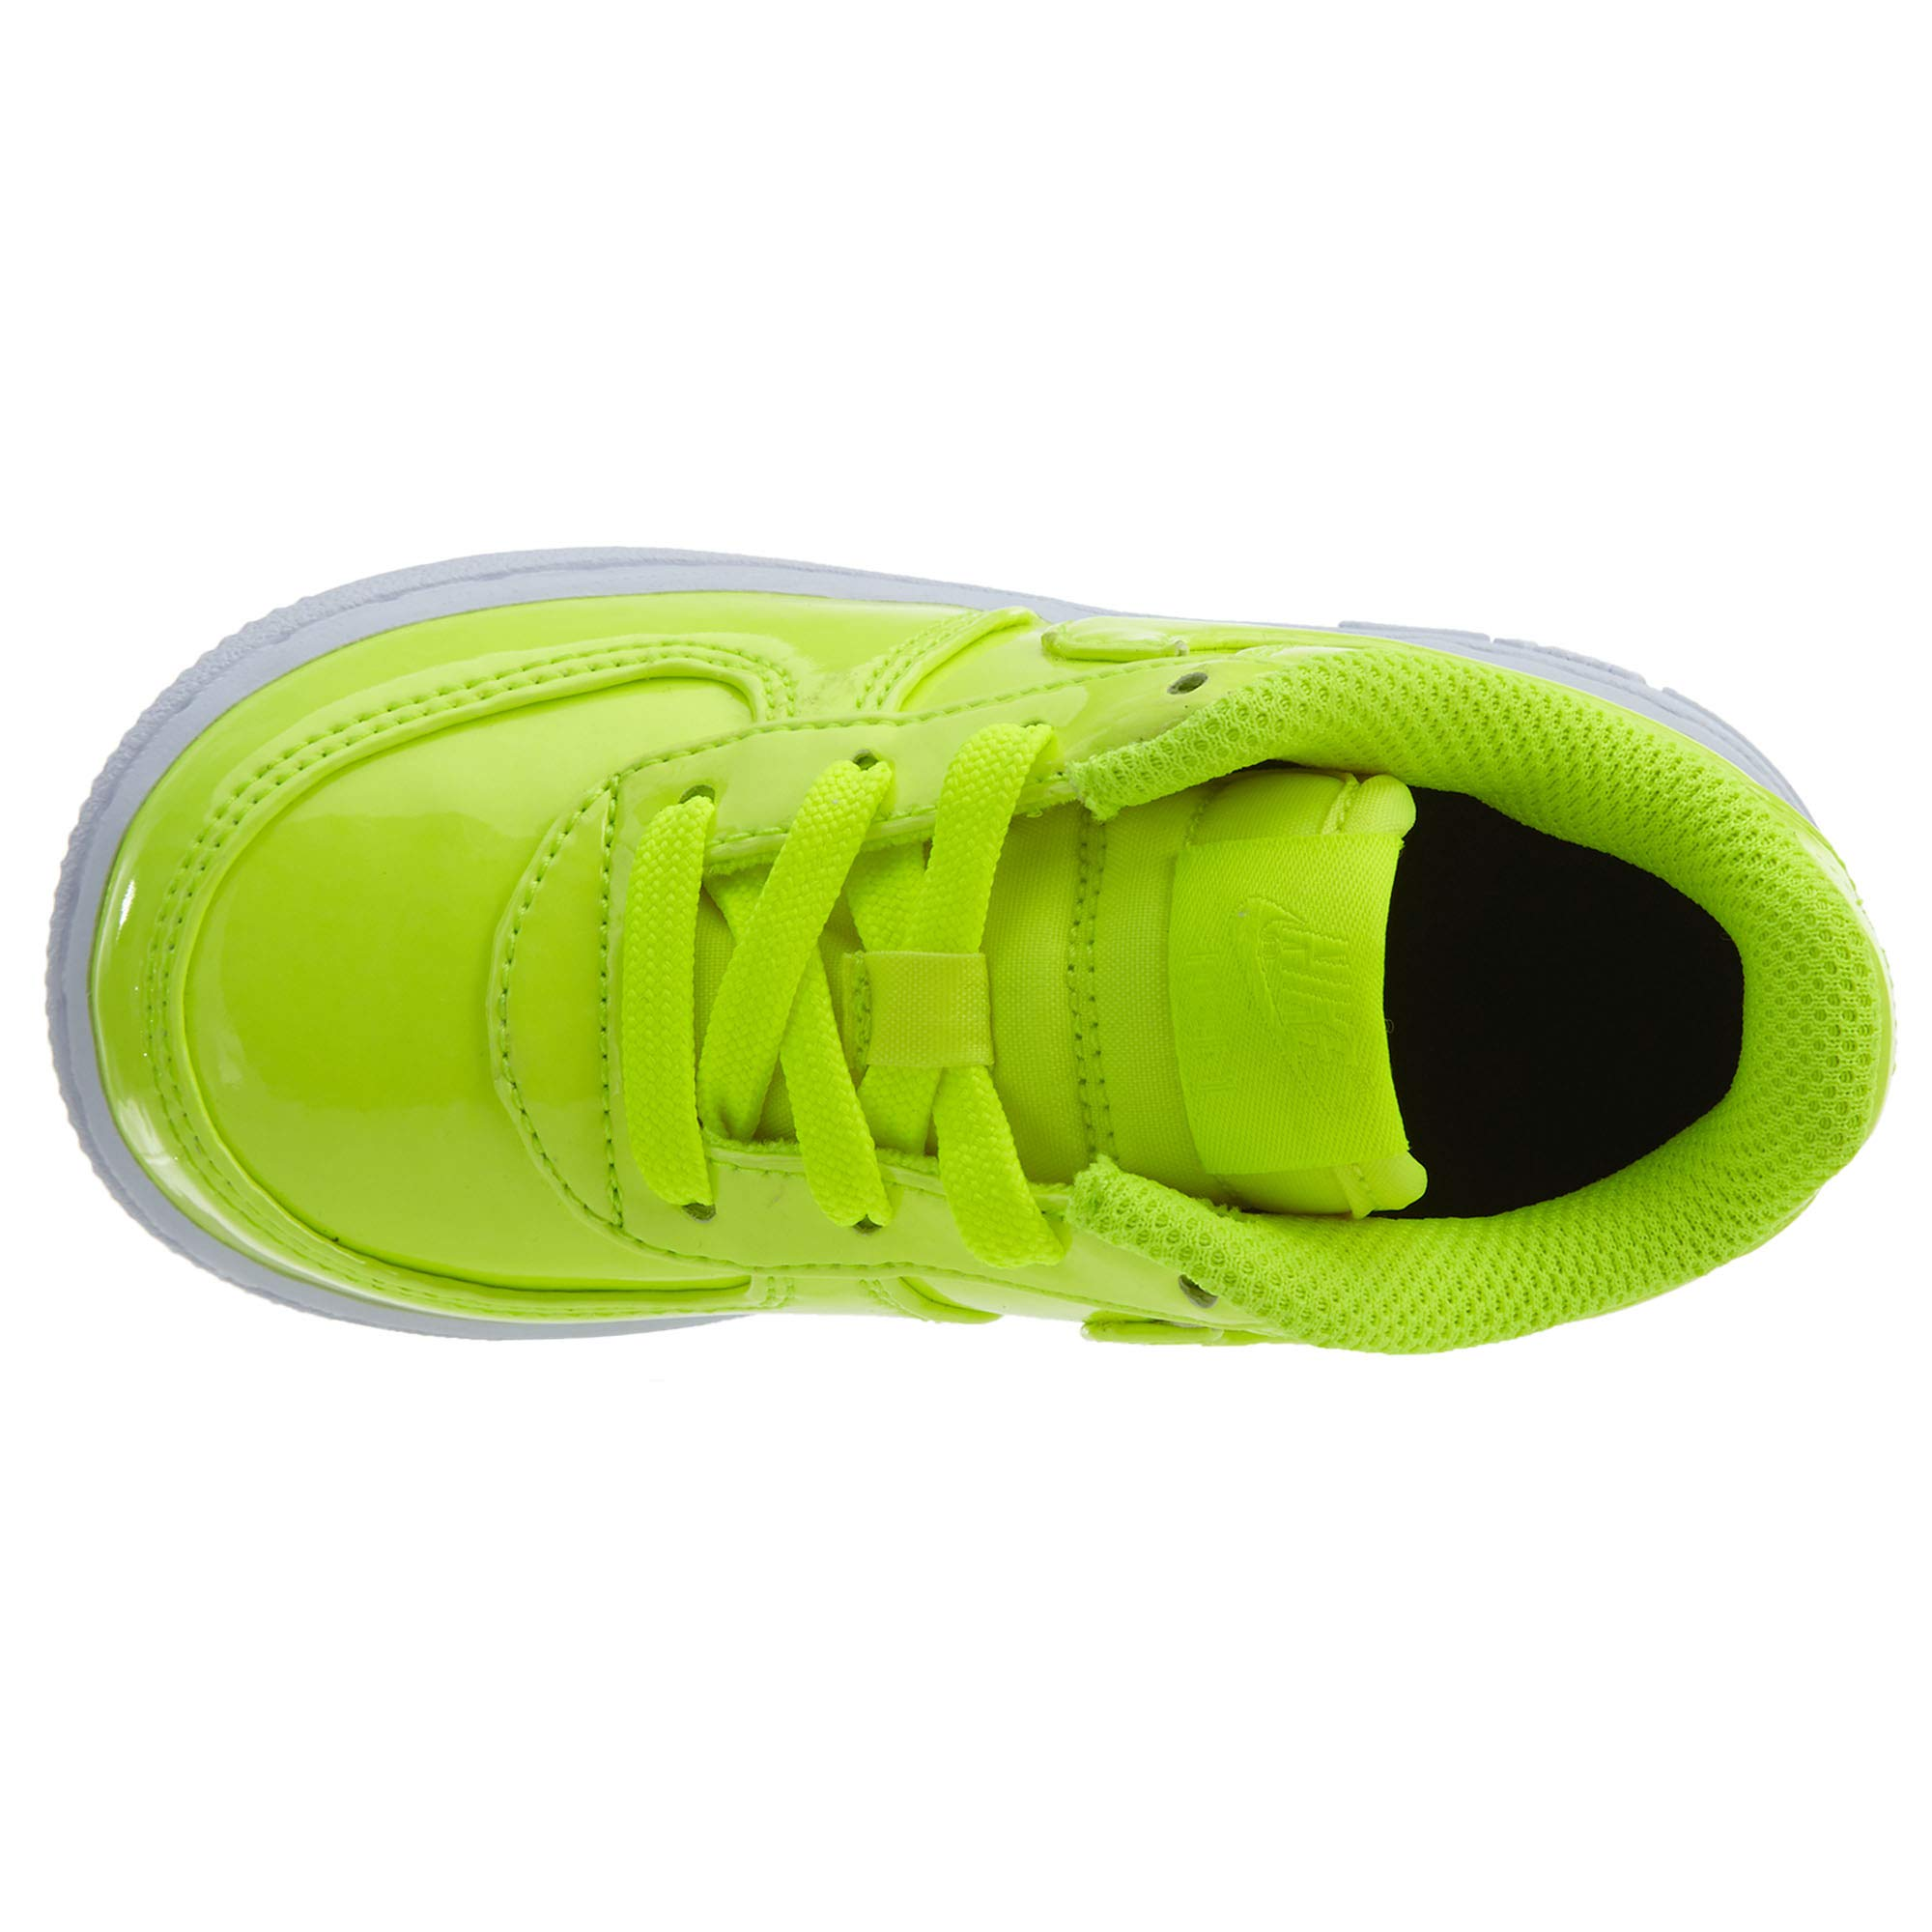 Nike Force 1 Lv8 Uv Toddlers Style: AO2288-700 Size: 6 by Nike (Image #6)